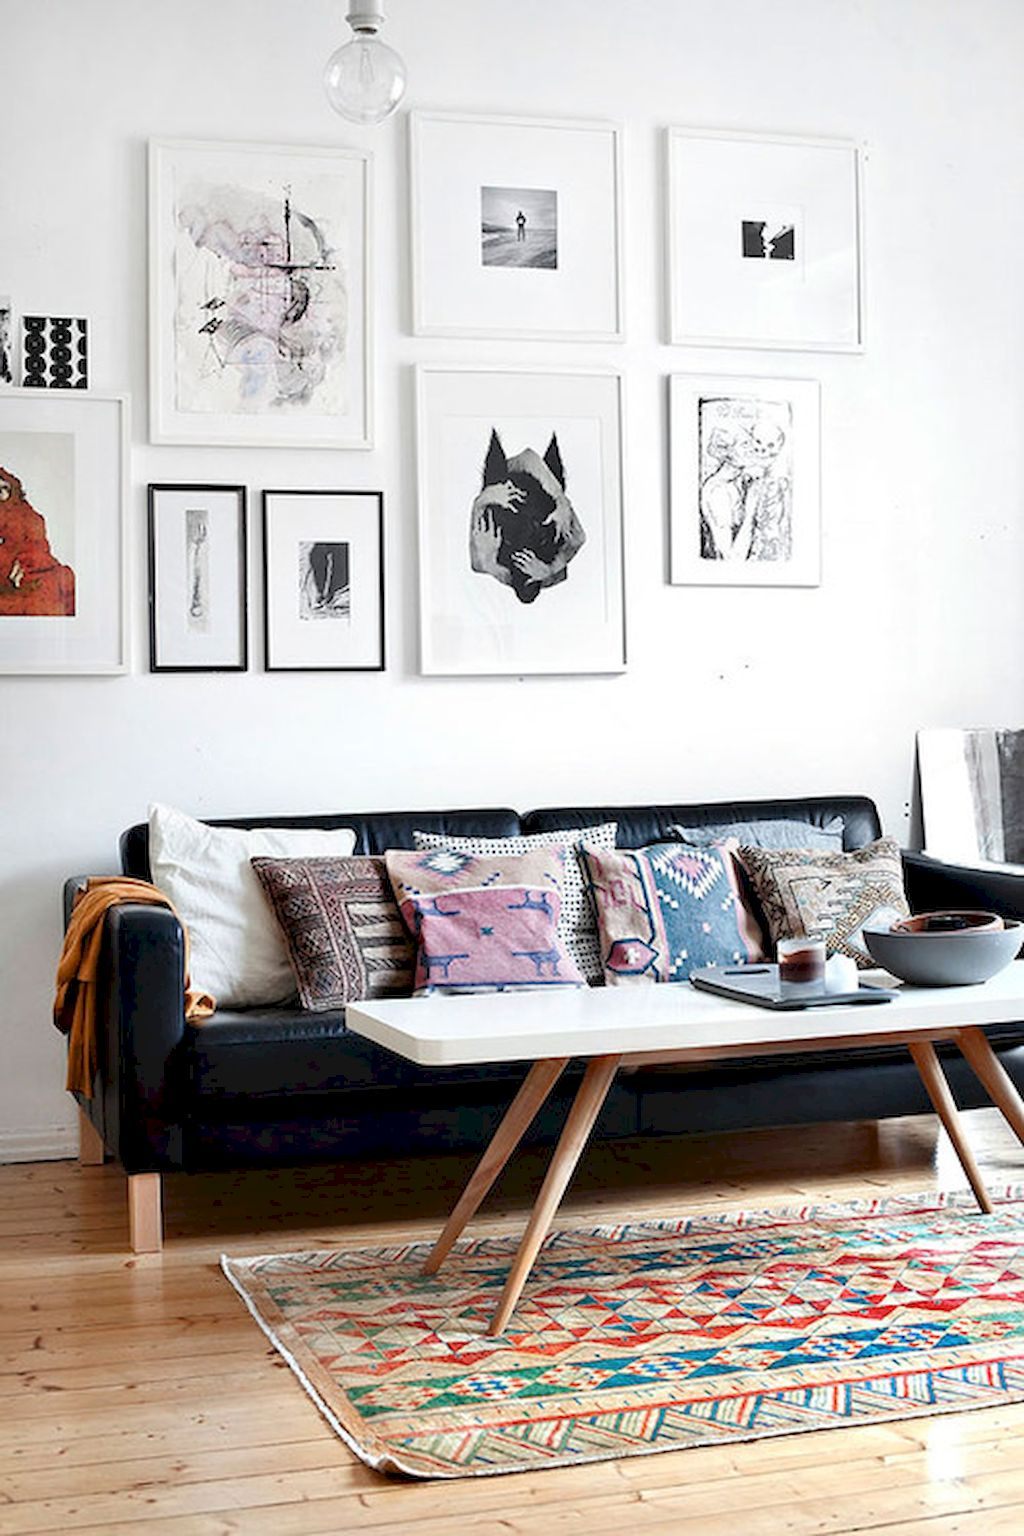 cheap-decorating-ideas-for-living-room-walls-simple-living-room-designs-for-small-spaces-pinterest-small-living-room-ideas-small-living-room-ideas-ikea-small-apartment-living-room-ideas.jpg